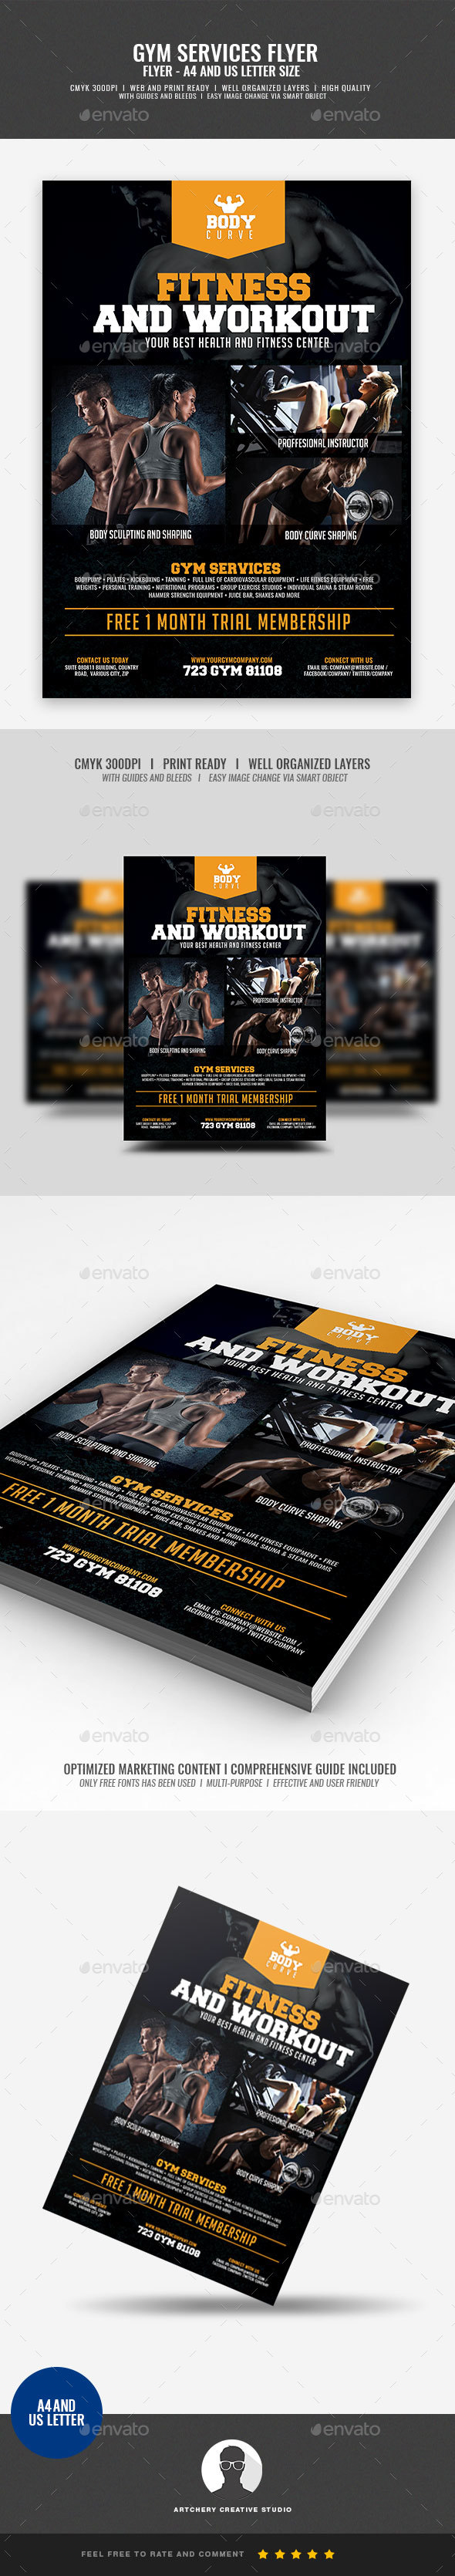 Fitness Gym Center Flyer - Corporate Flyers